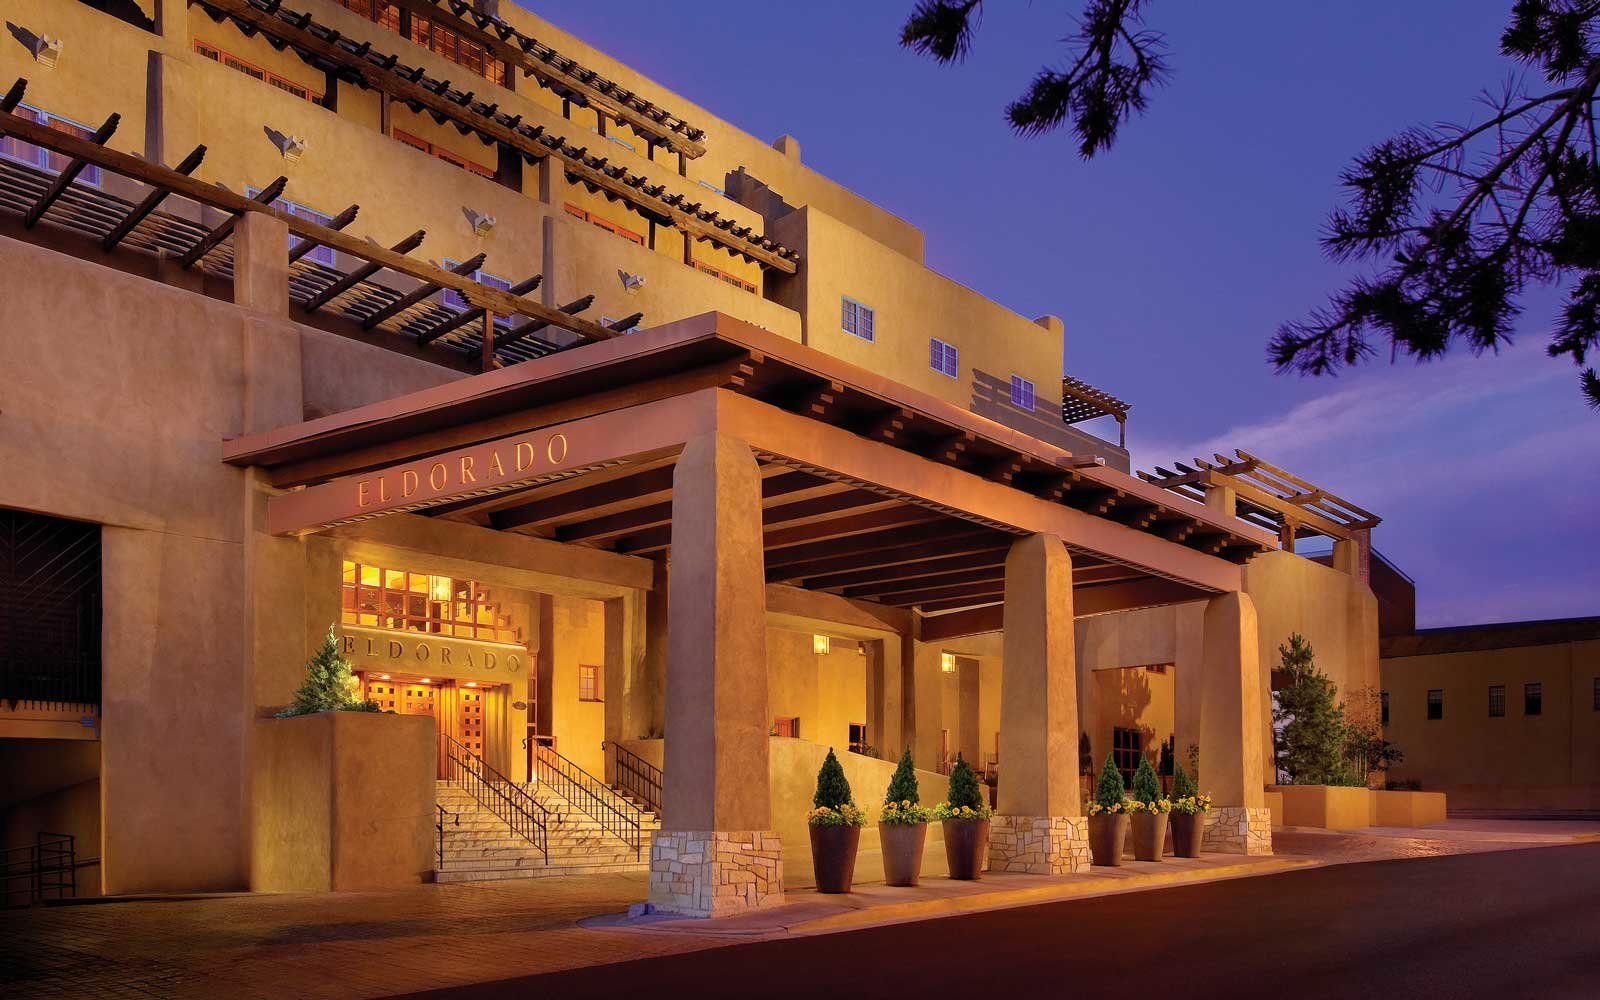 Eldorado Hotel and Spa in Santa Fe, New Mexico